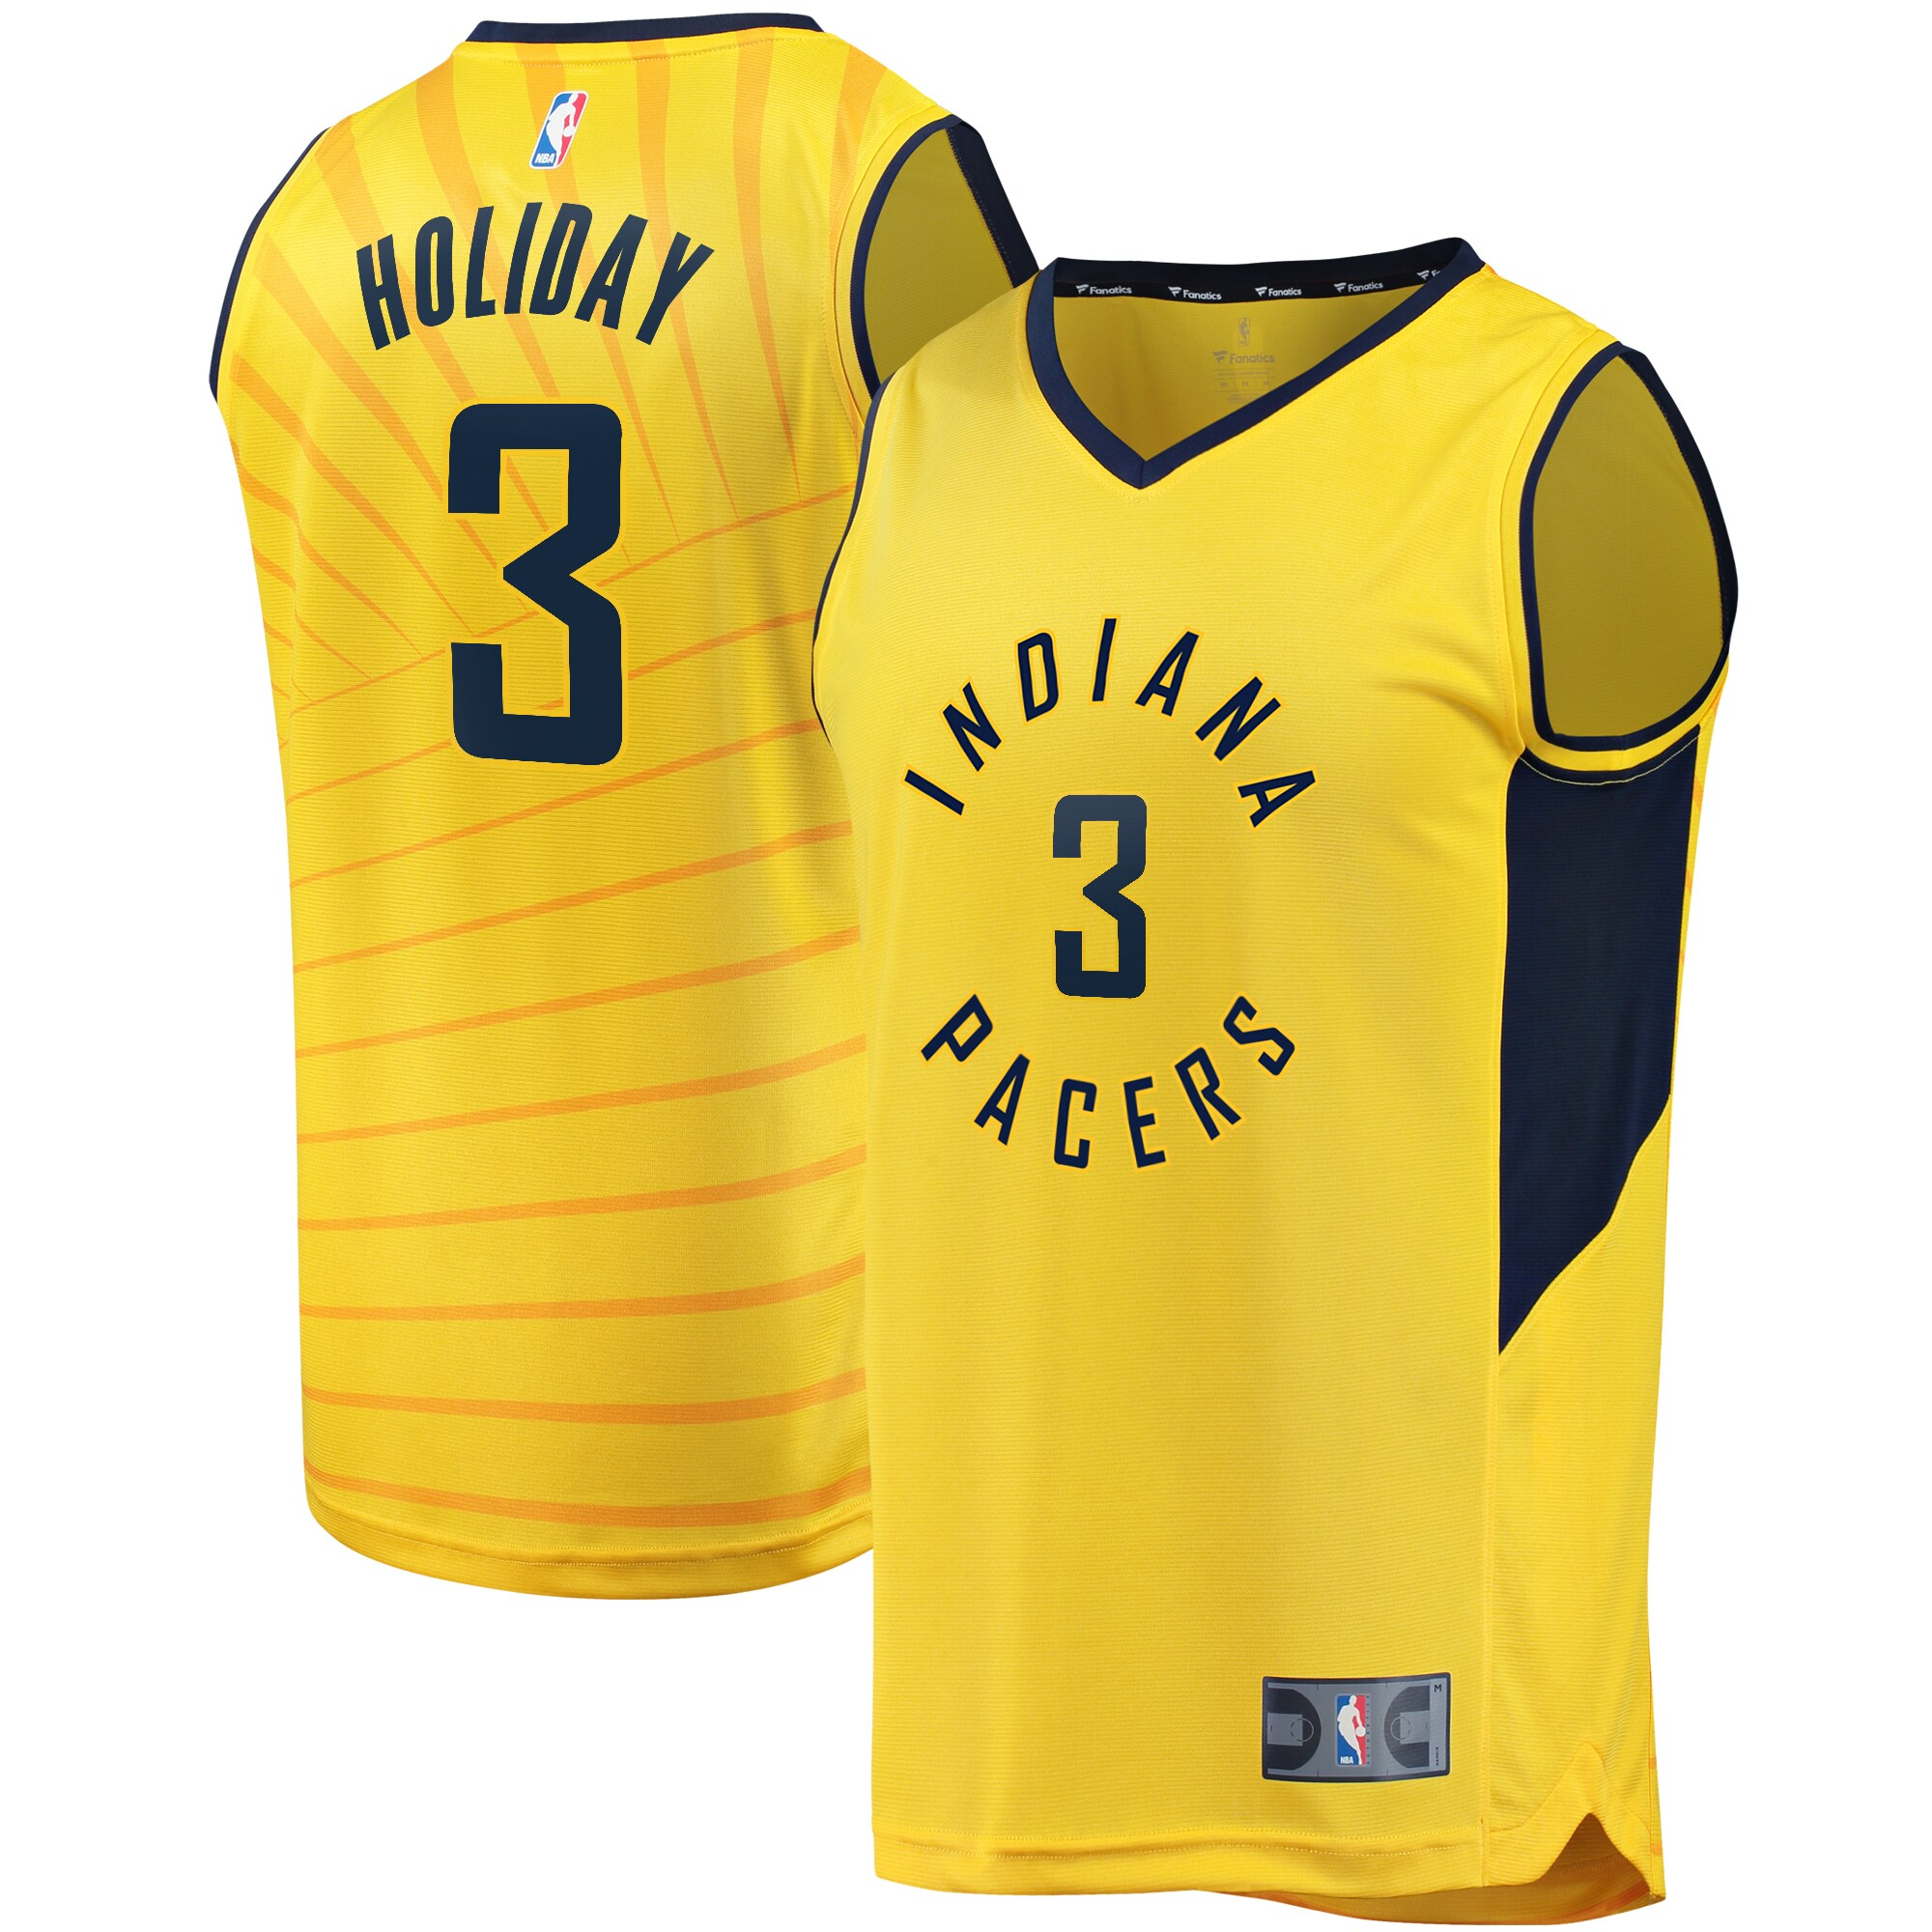 Aaron Holiday Indiana Pacers Fanatics Branded Fast Break Player Replica Jersey - Statement Edition - Gold